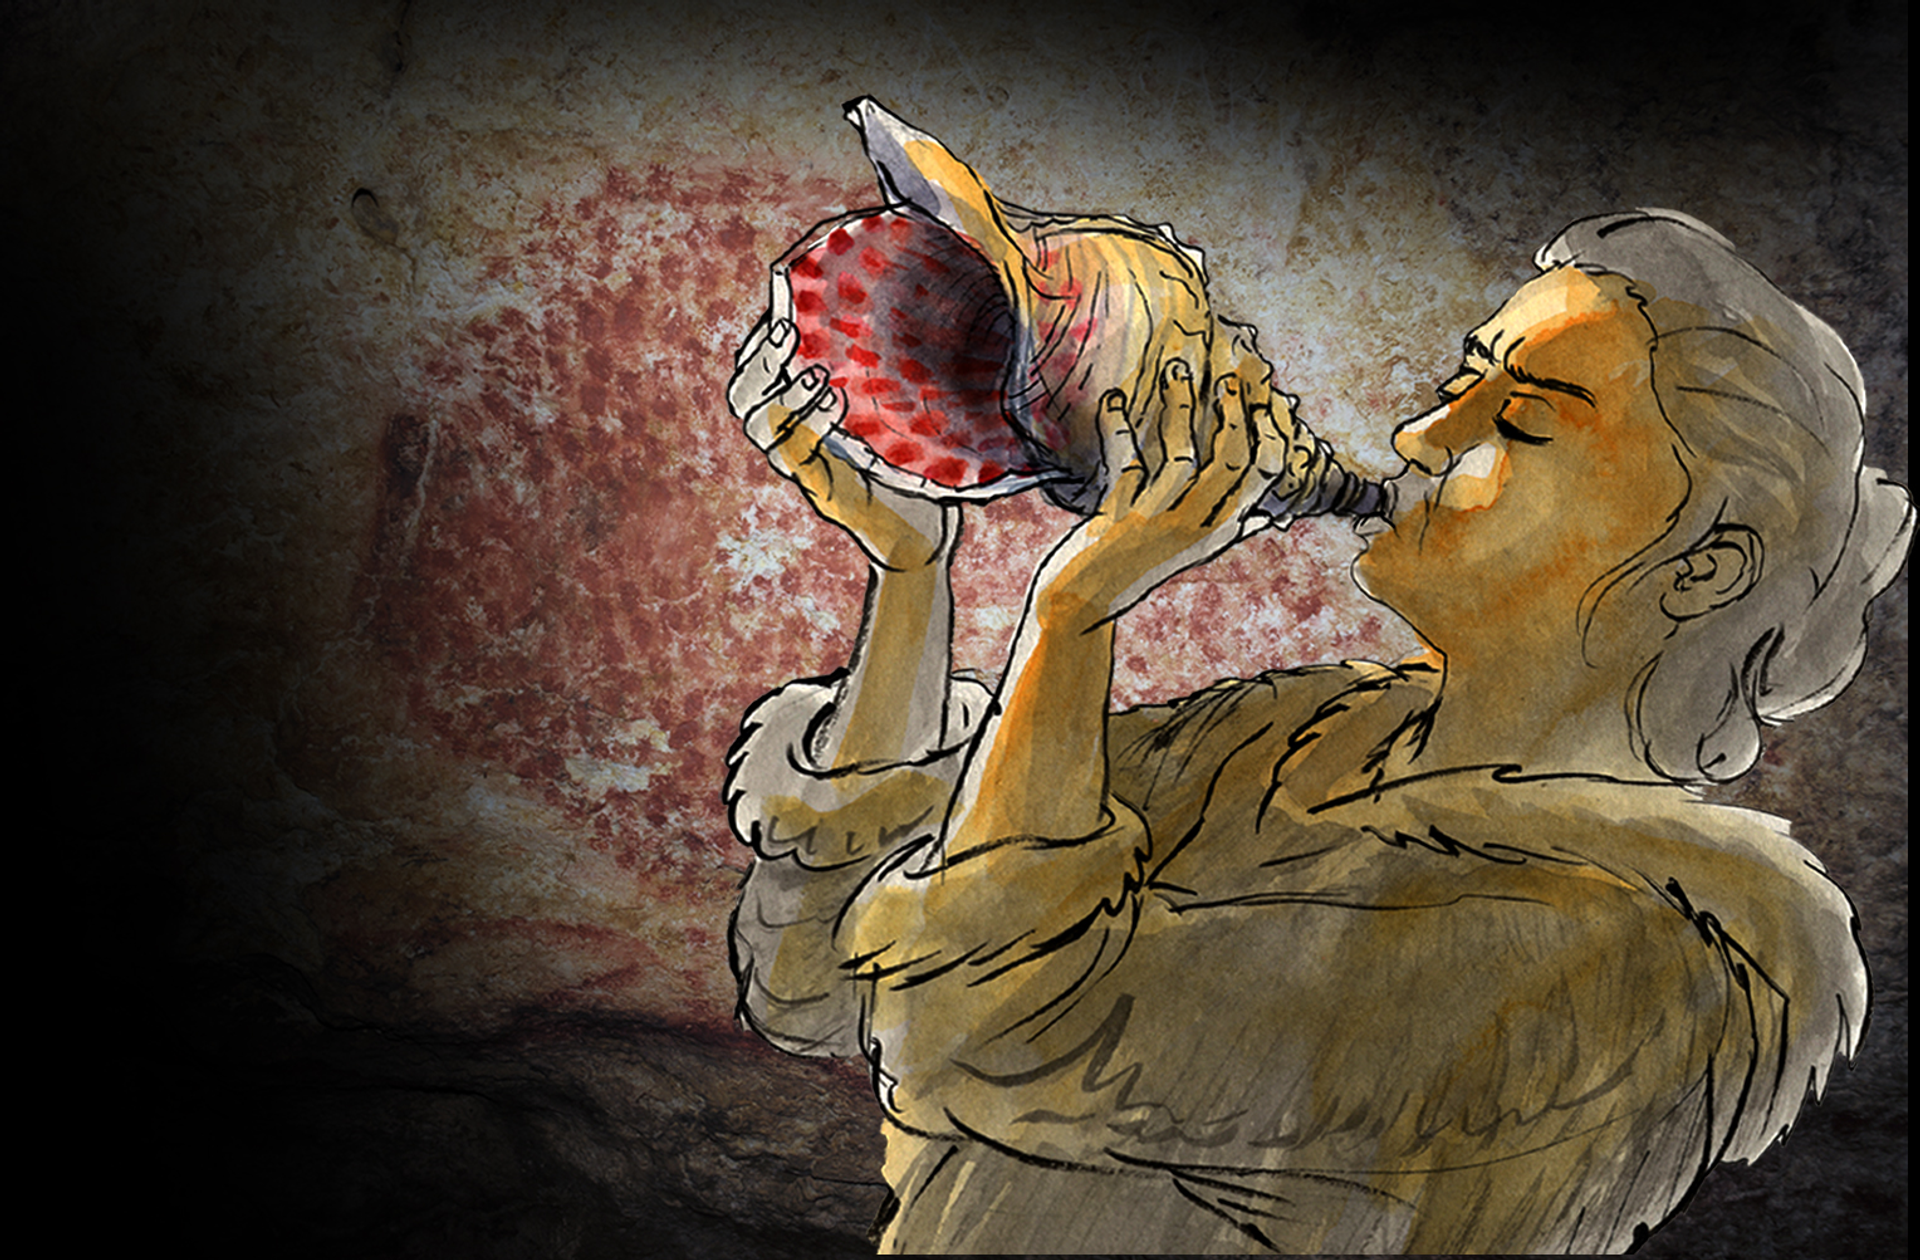 An artist's reconstruction of the instrument being played. In the background, a red dotted buffalo decorates the walls of the Marsoulas Cave. Similar motifs decorate the instrument. © Carole Fritz et al. 2021 / drawing: Gilles Tosello